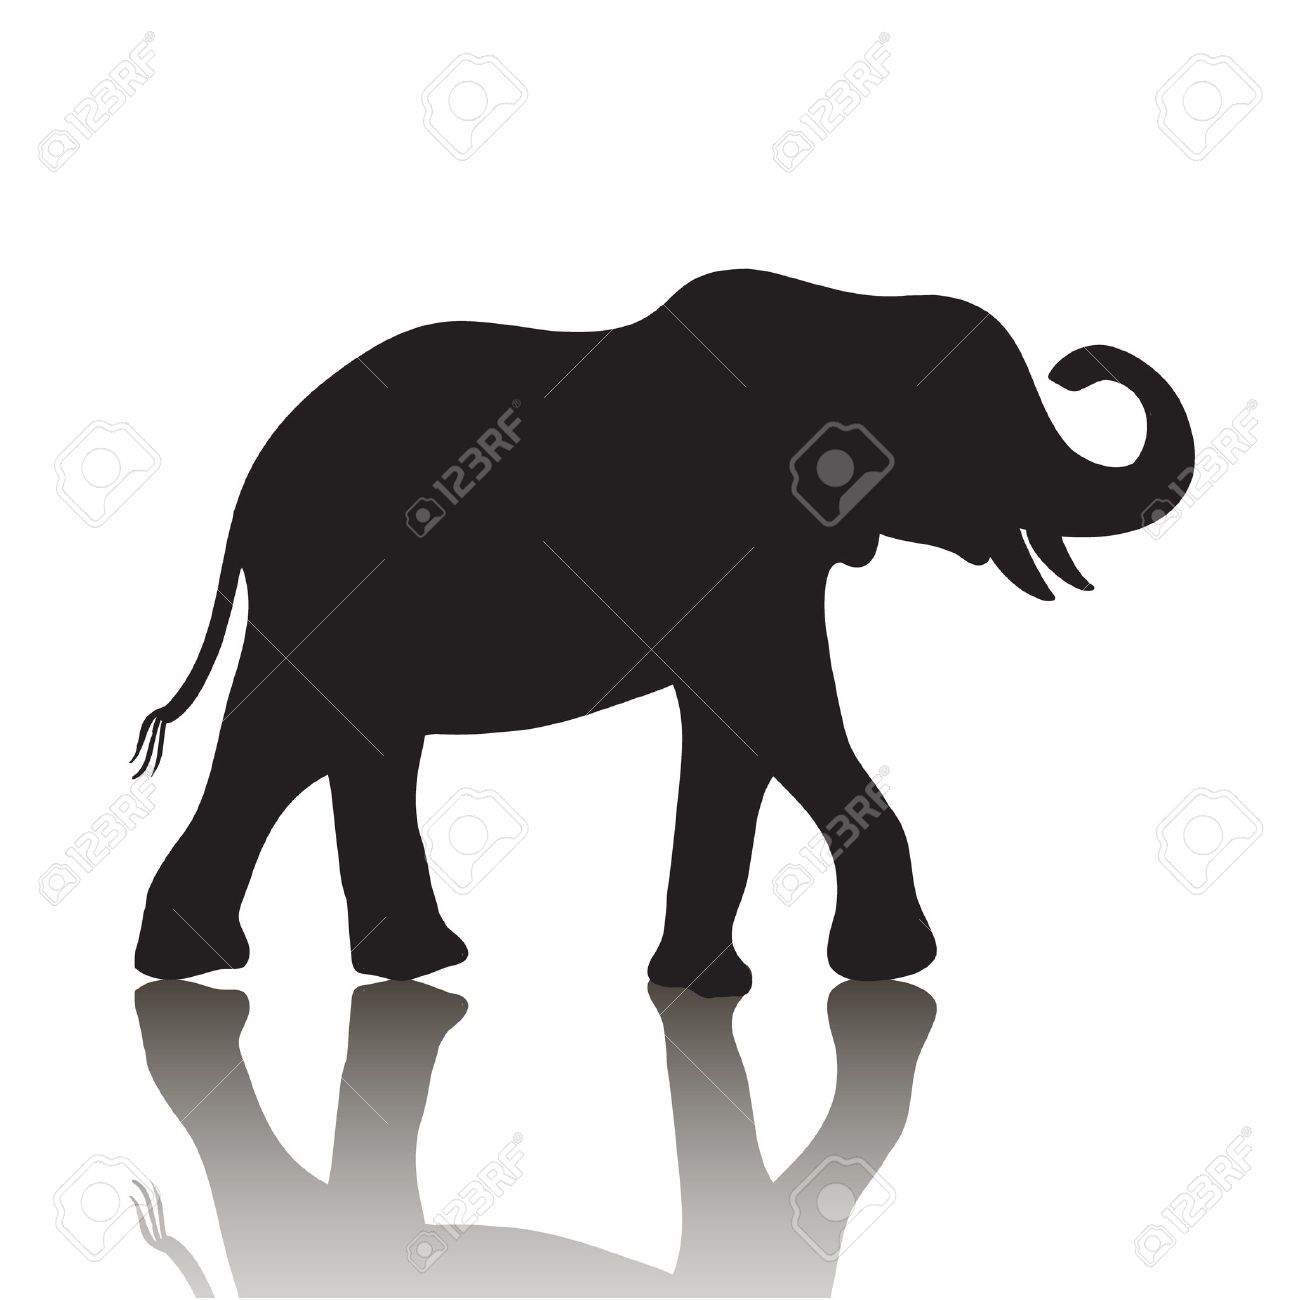 vector elephant silhouette with shadow isolated on white background stock vector 38017748